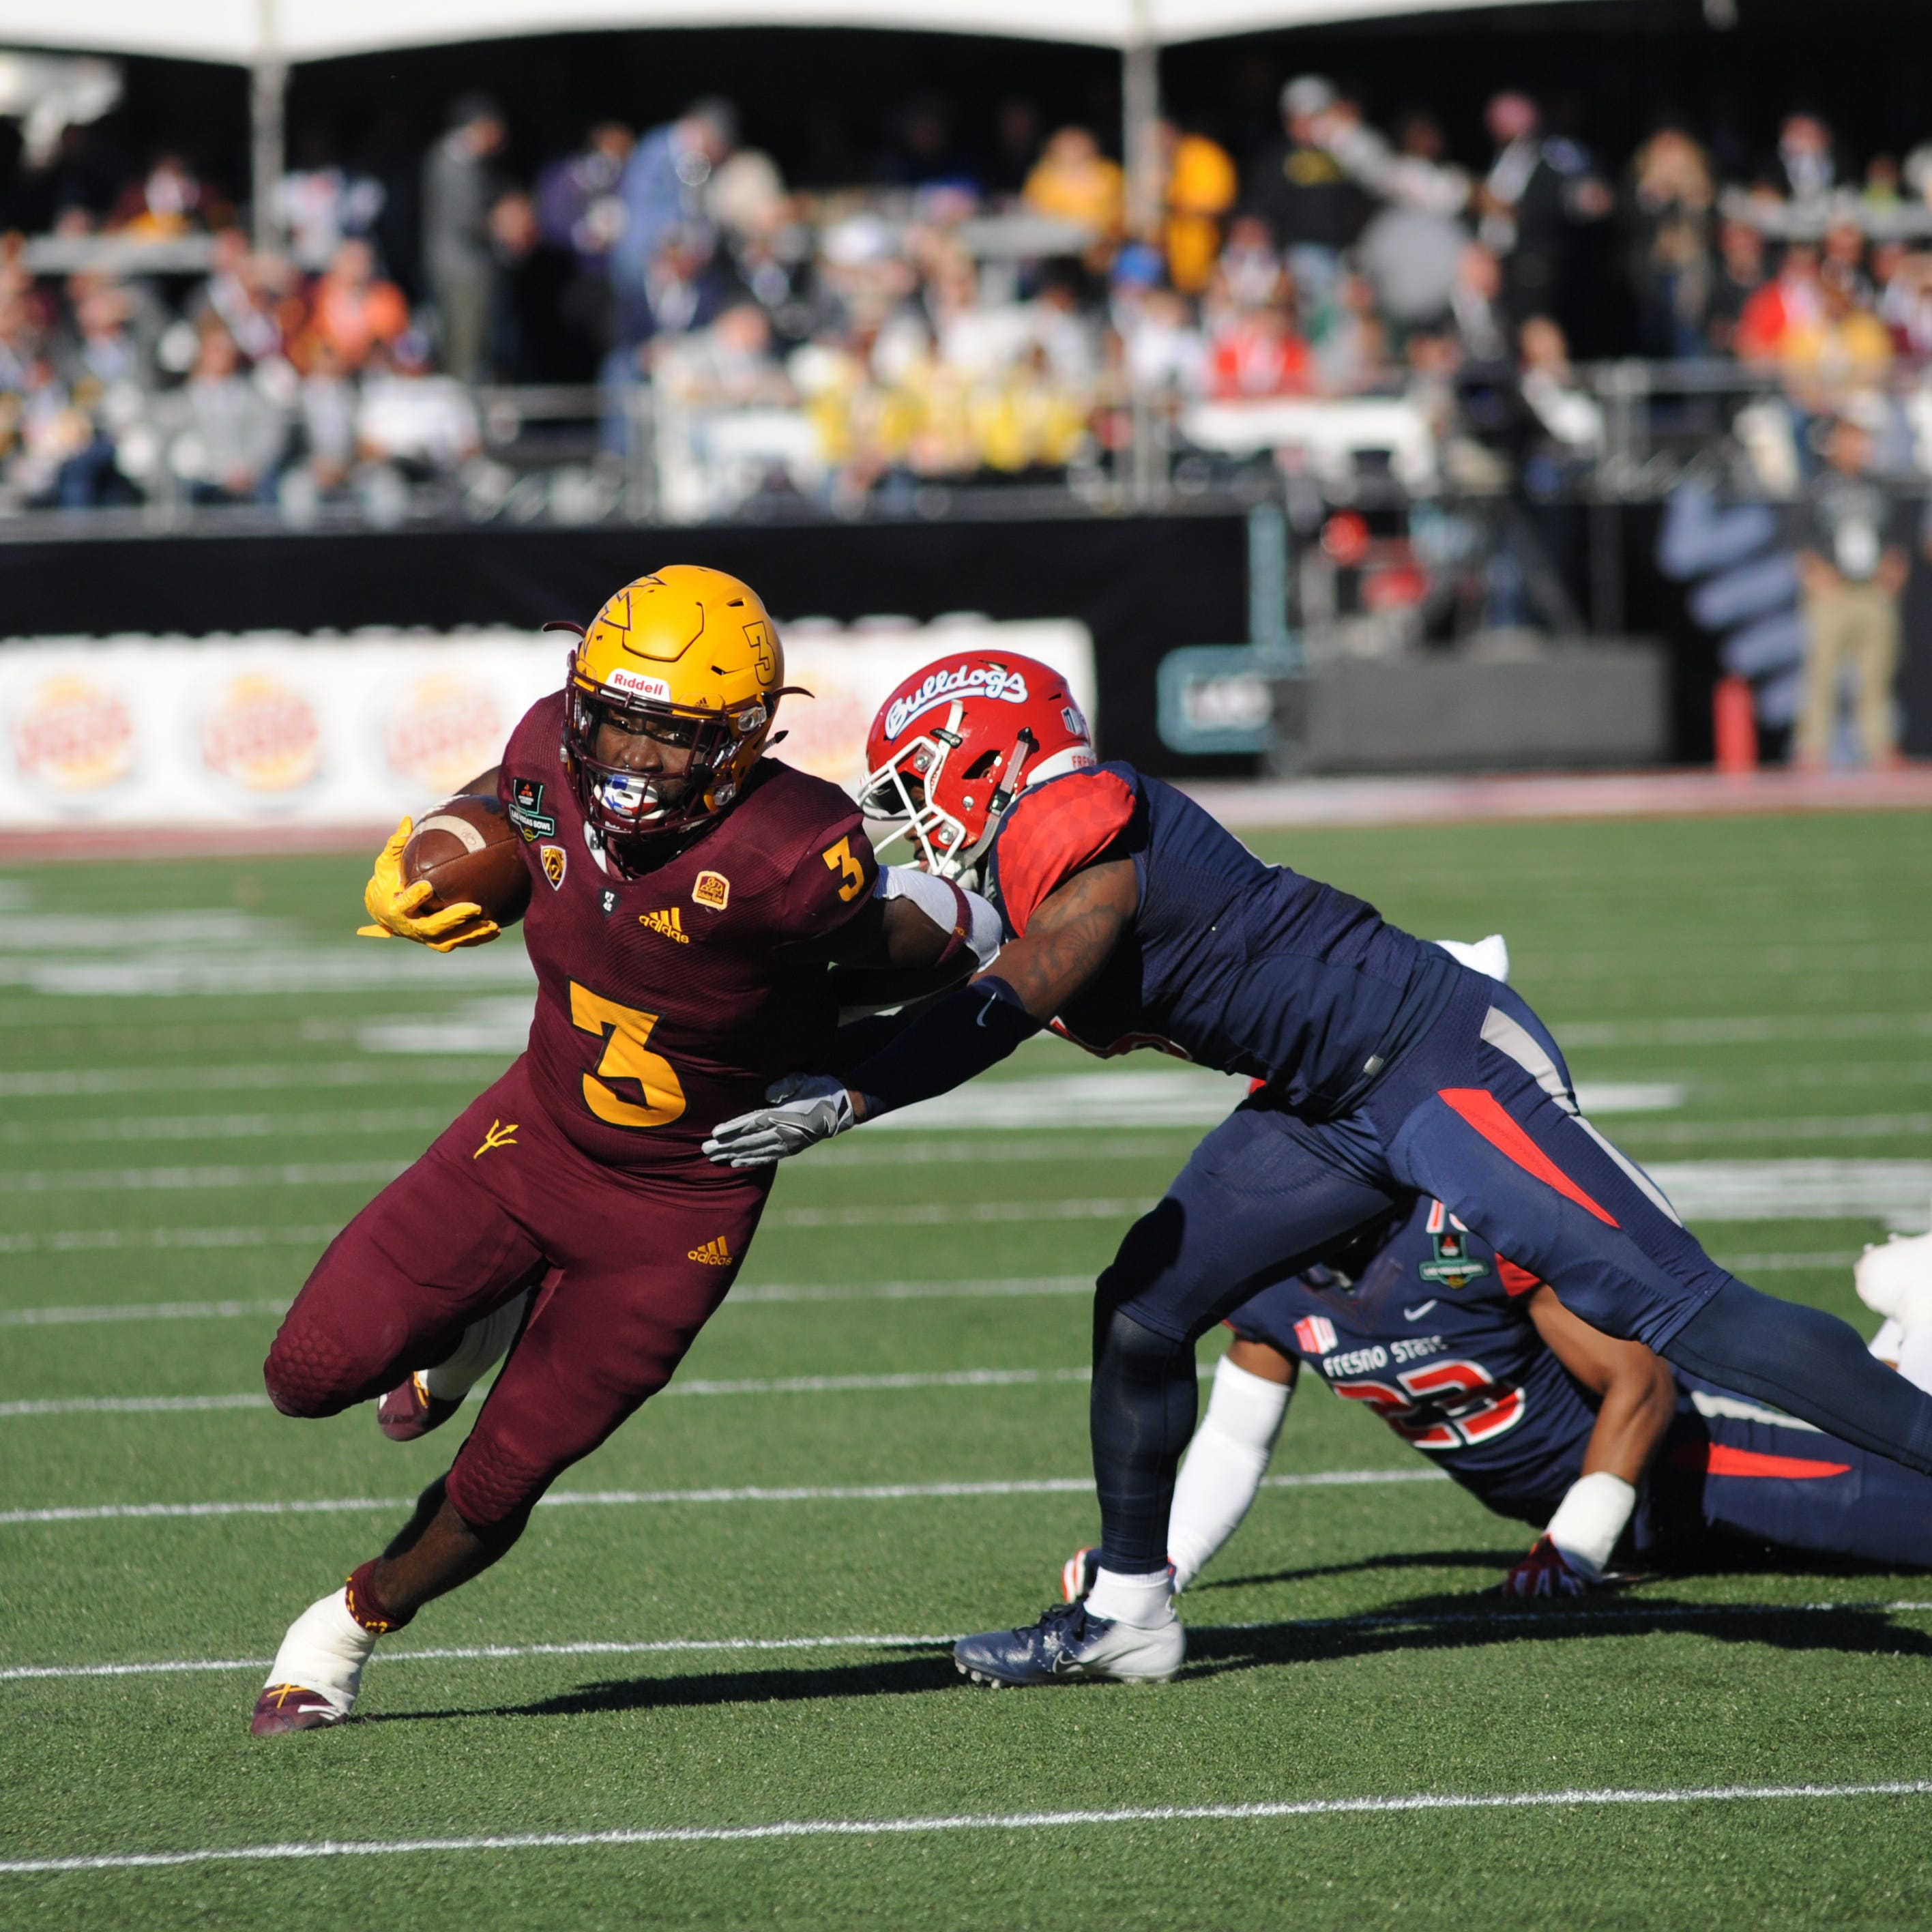 Past, present and future: What we learned in ASU's Las Vegas Bowl loss to Fresno State